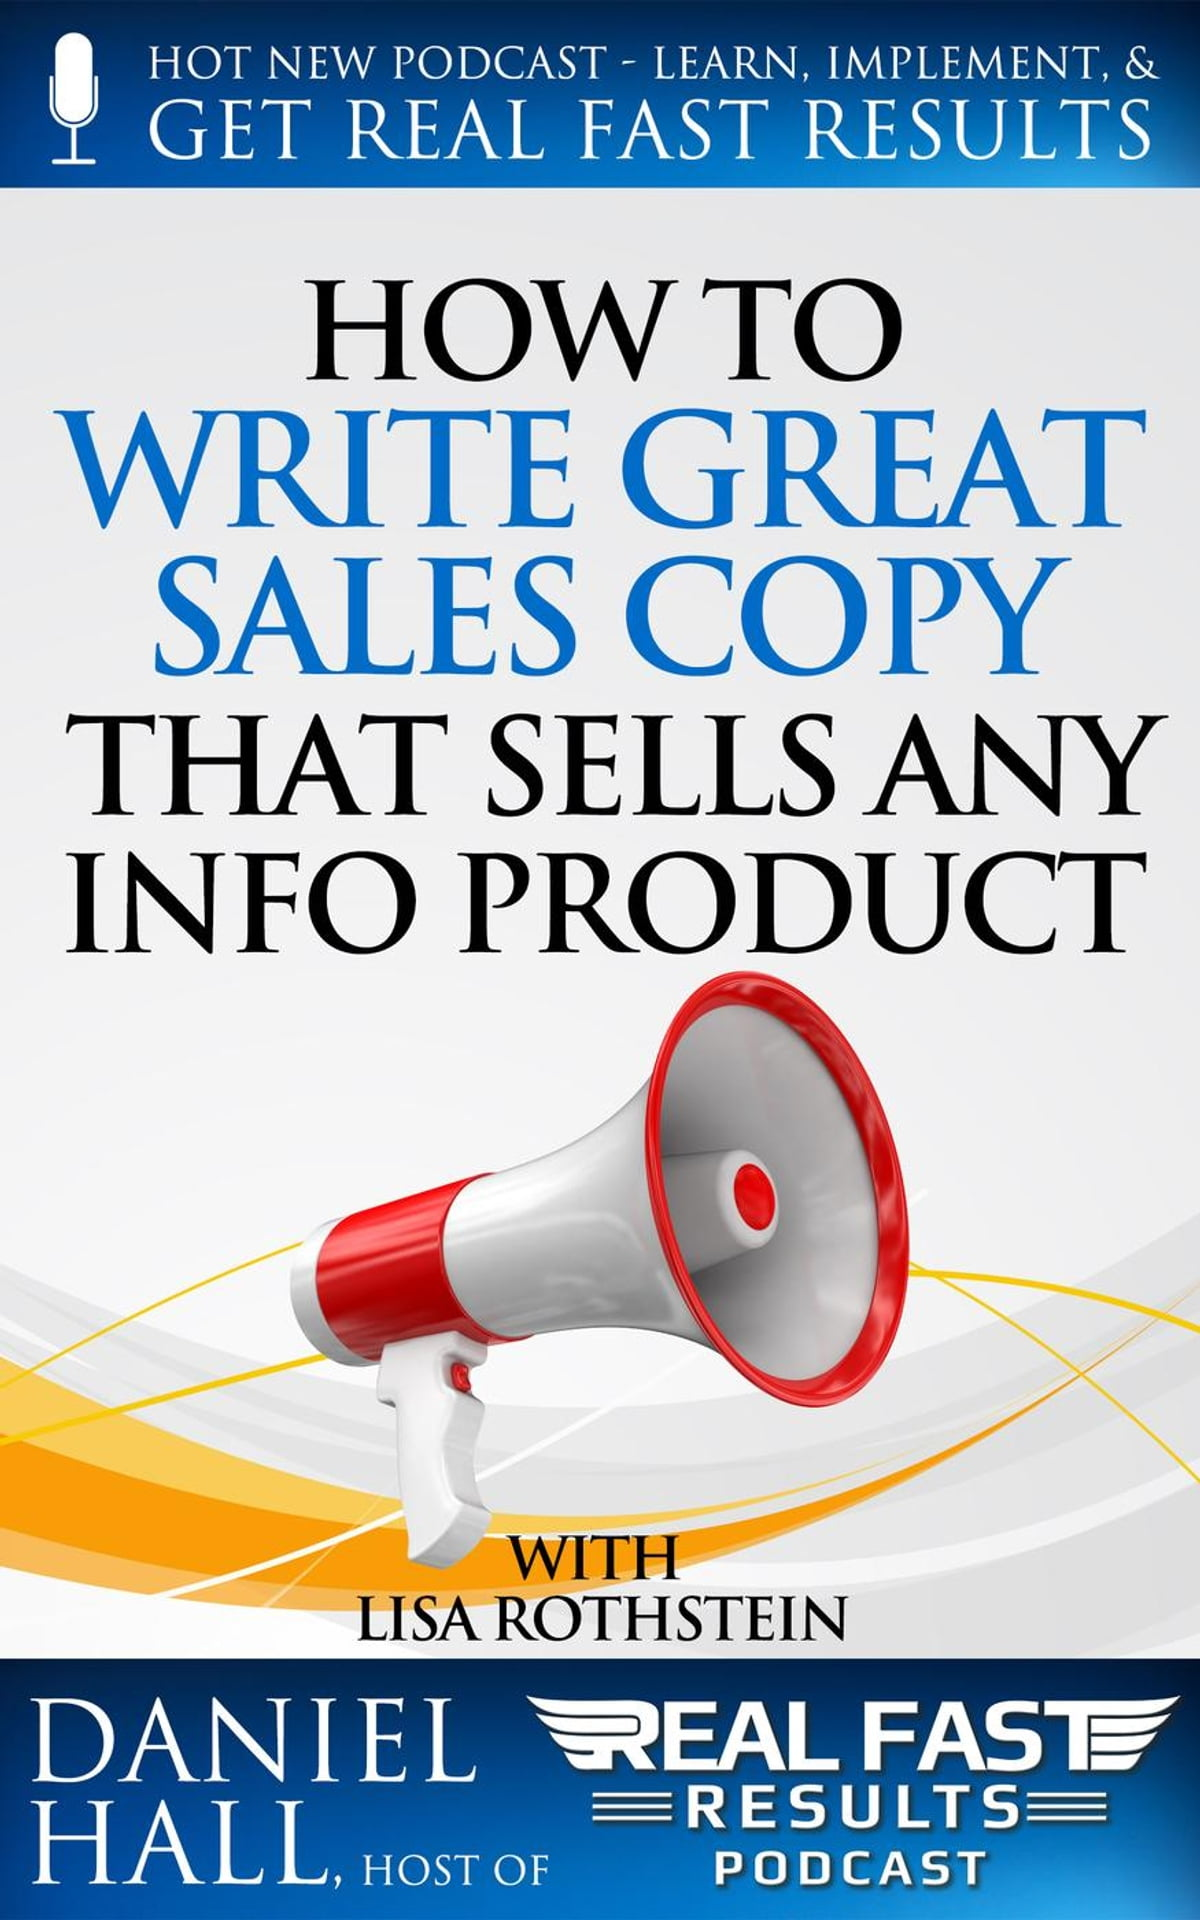 How To Write Great Sales Copy That Sells Any Info Product Even If